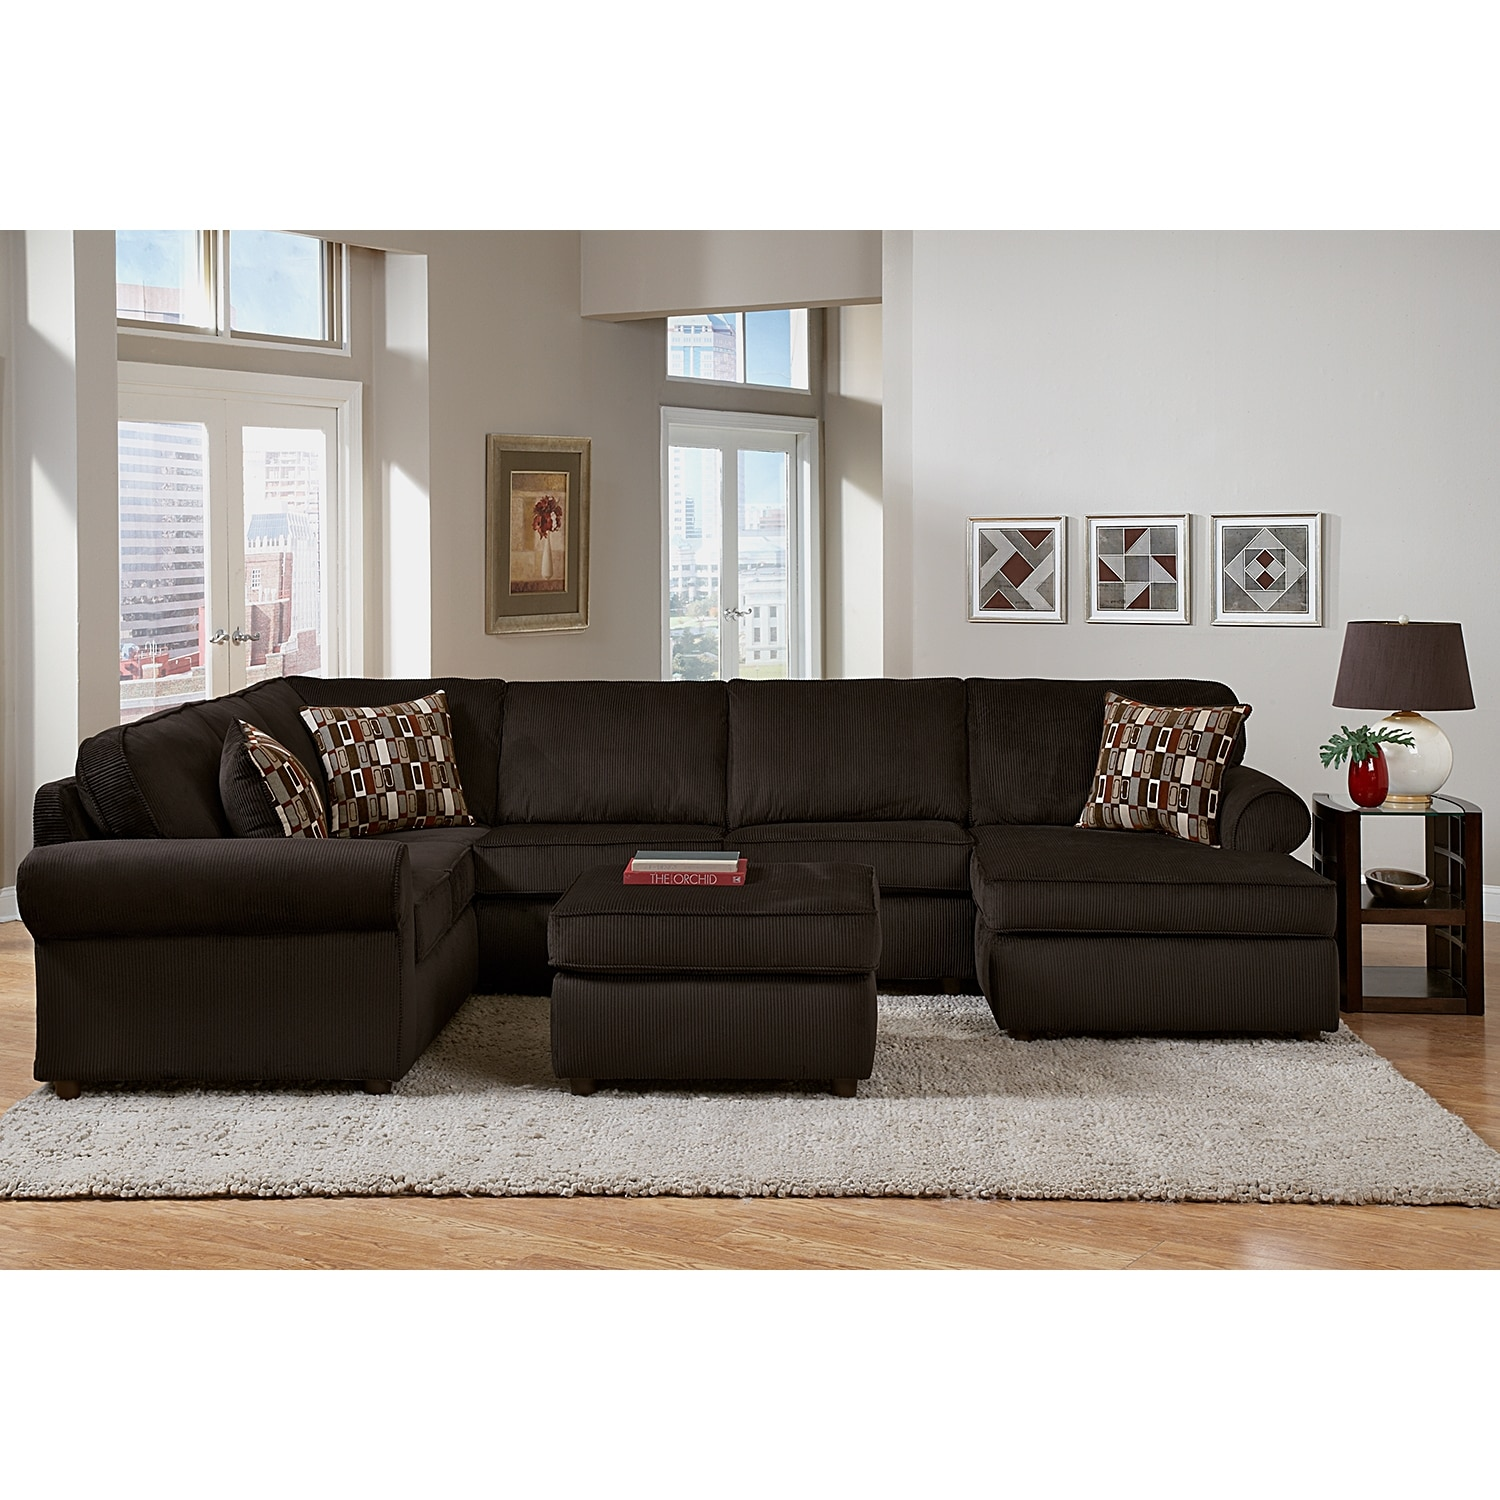 Monarch 3 piece sectional value city furniture